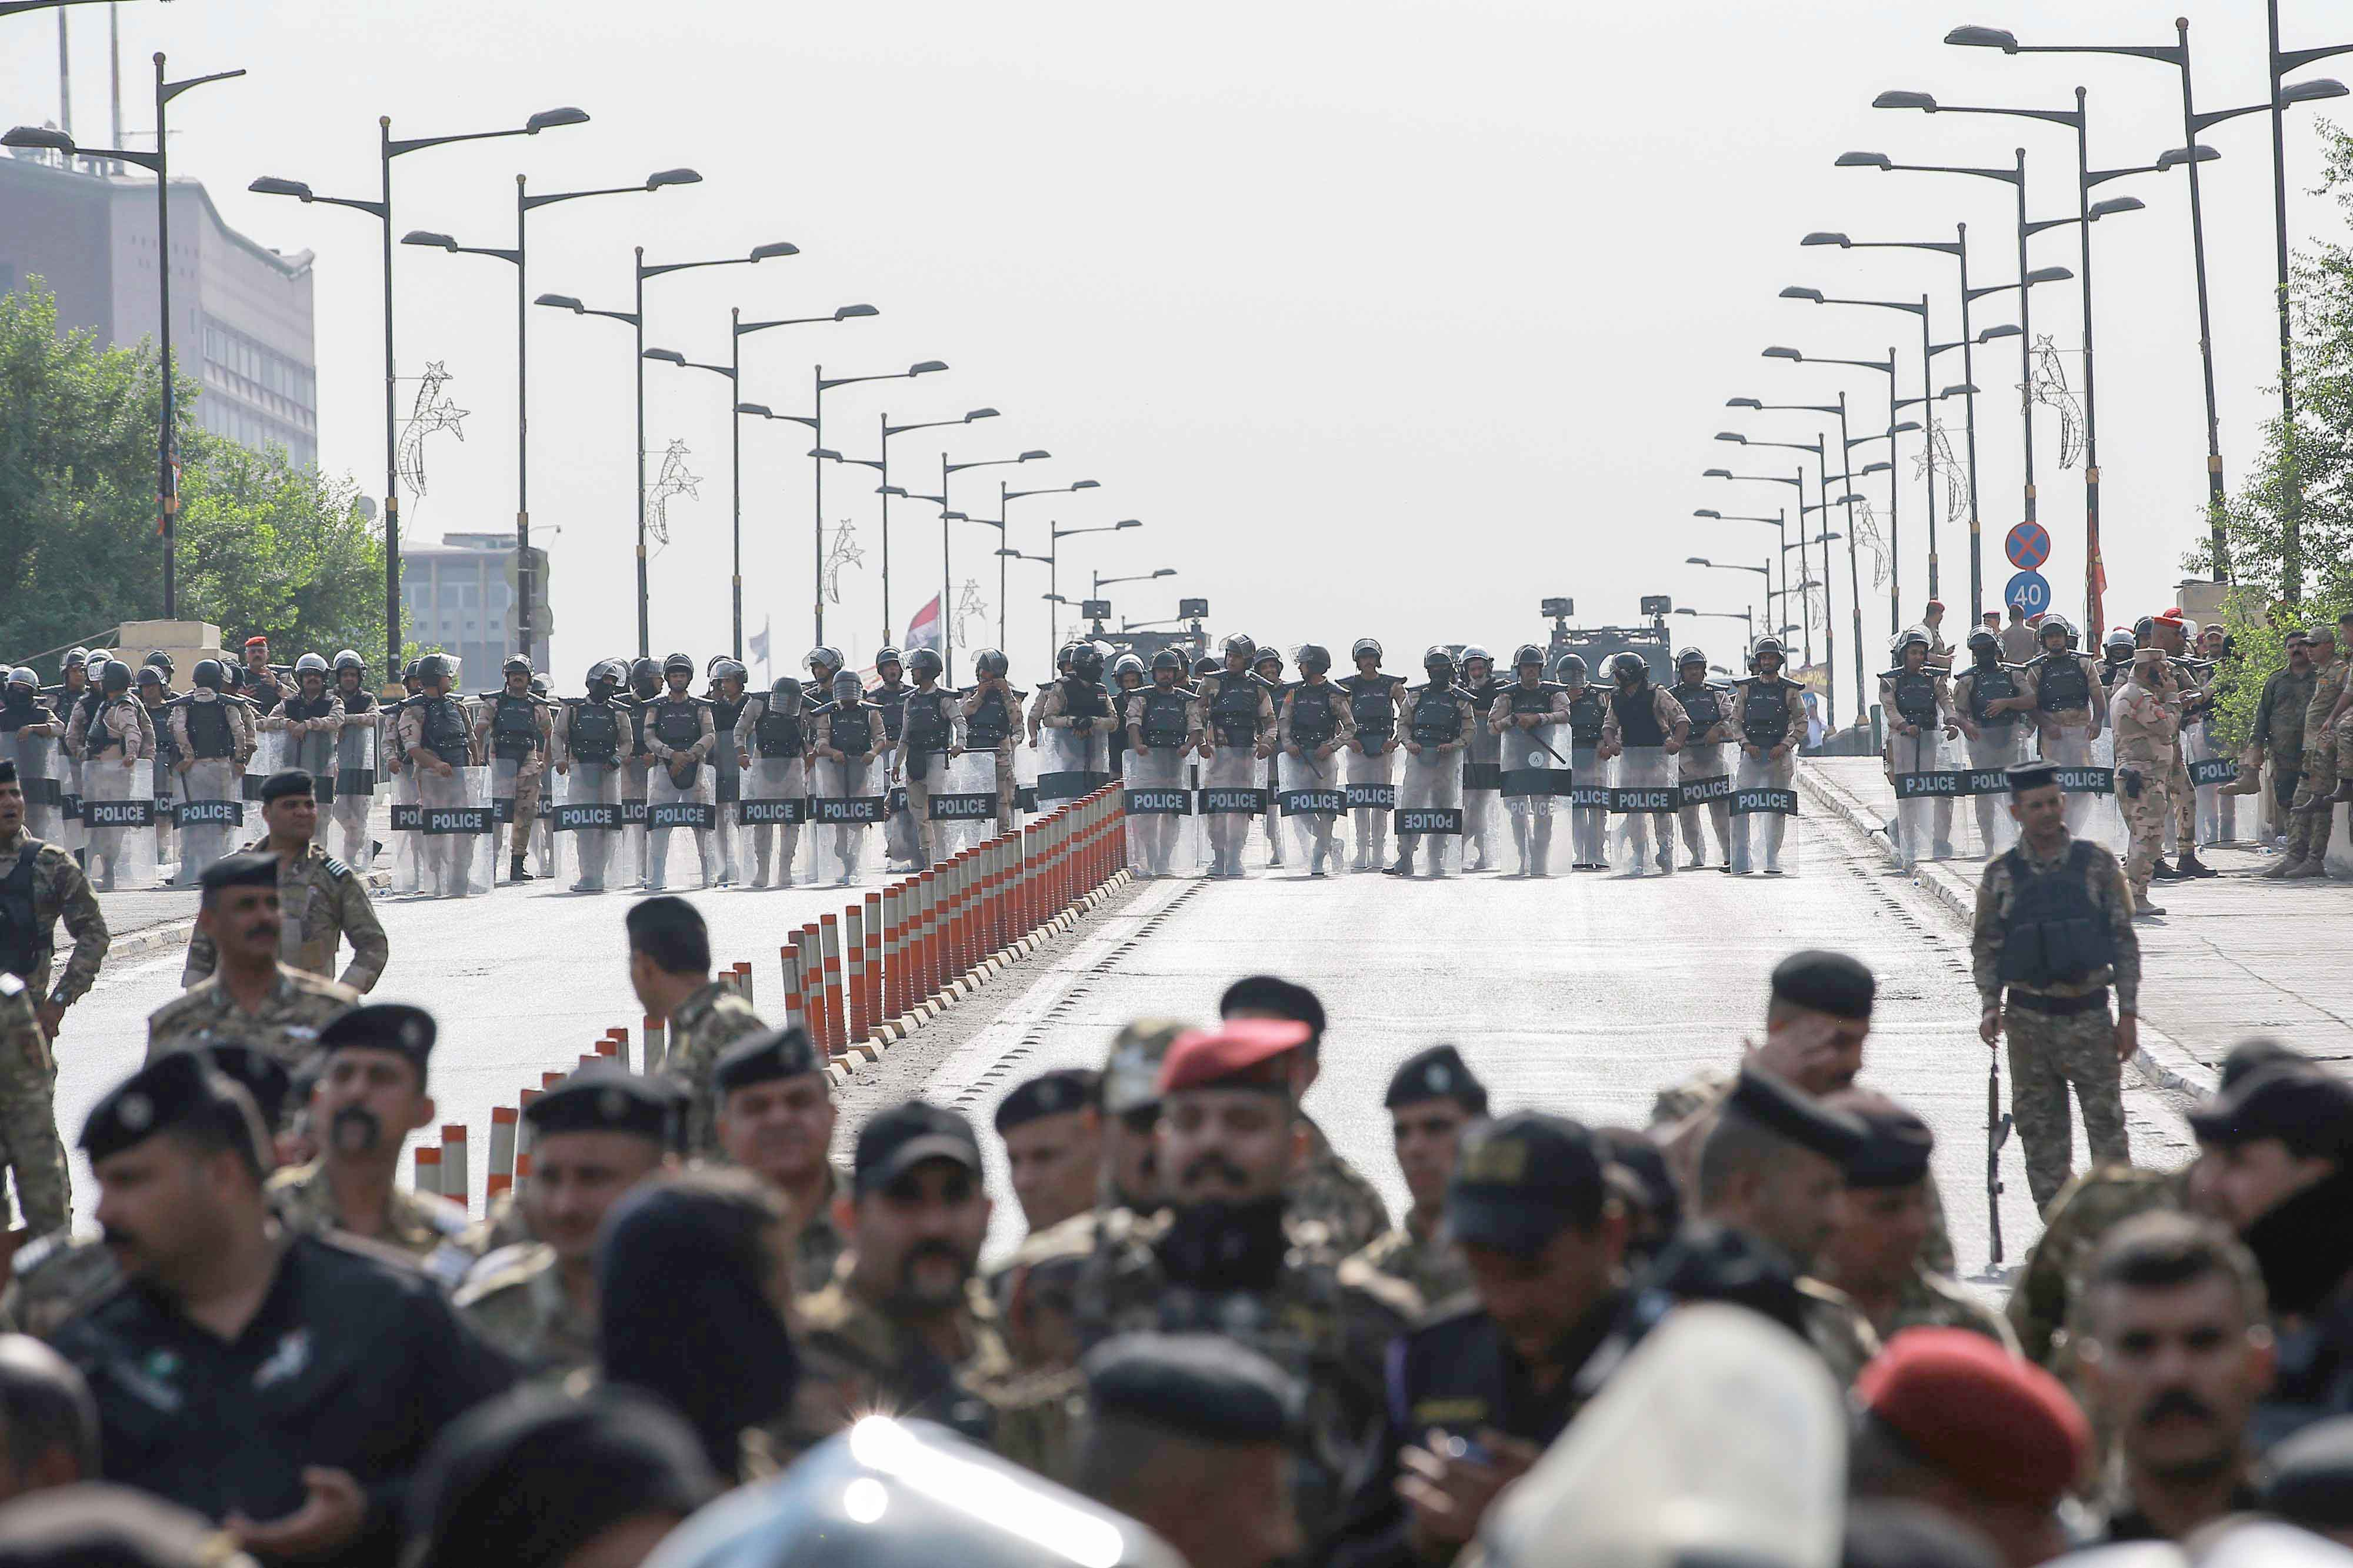 Security fortress. Iraqi security forces block a road during an anti-government demonstration against alleged government corruption in Tahrir Square in central Baghdad, October 1.(DPA)